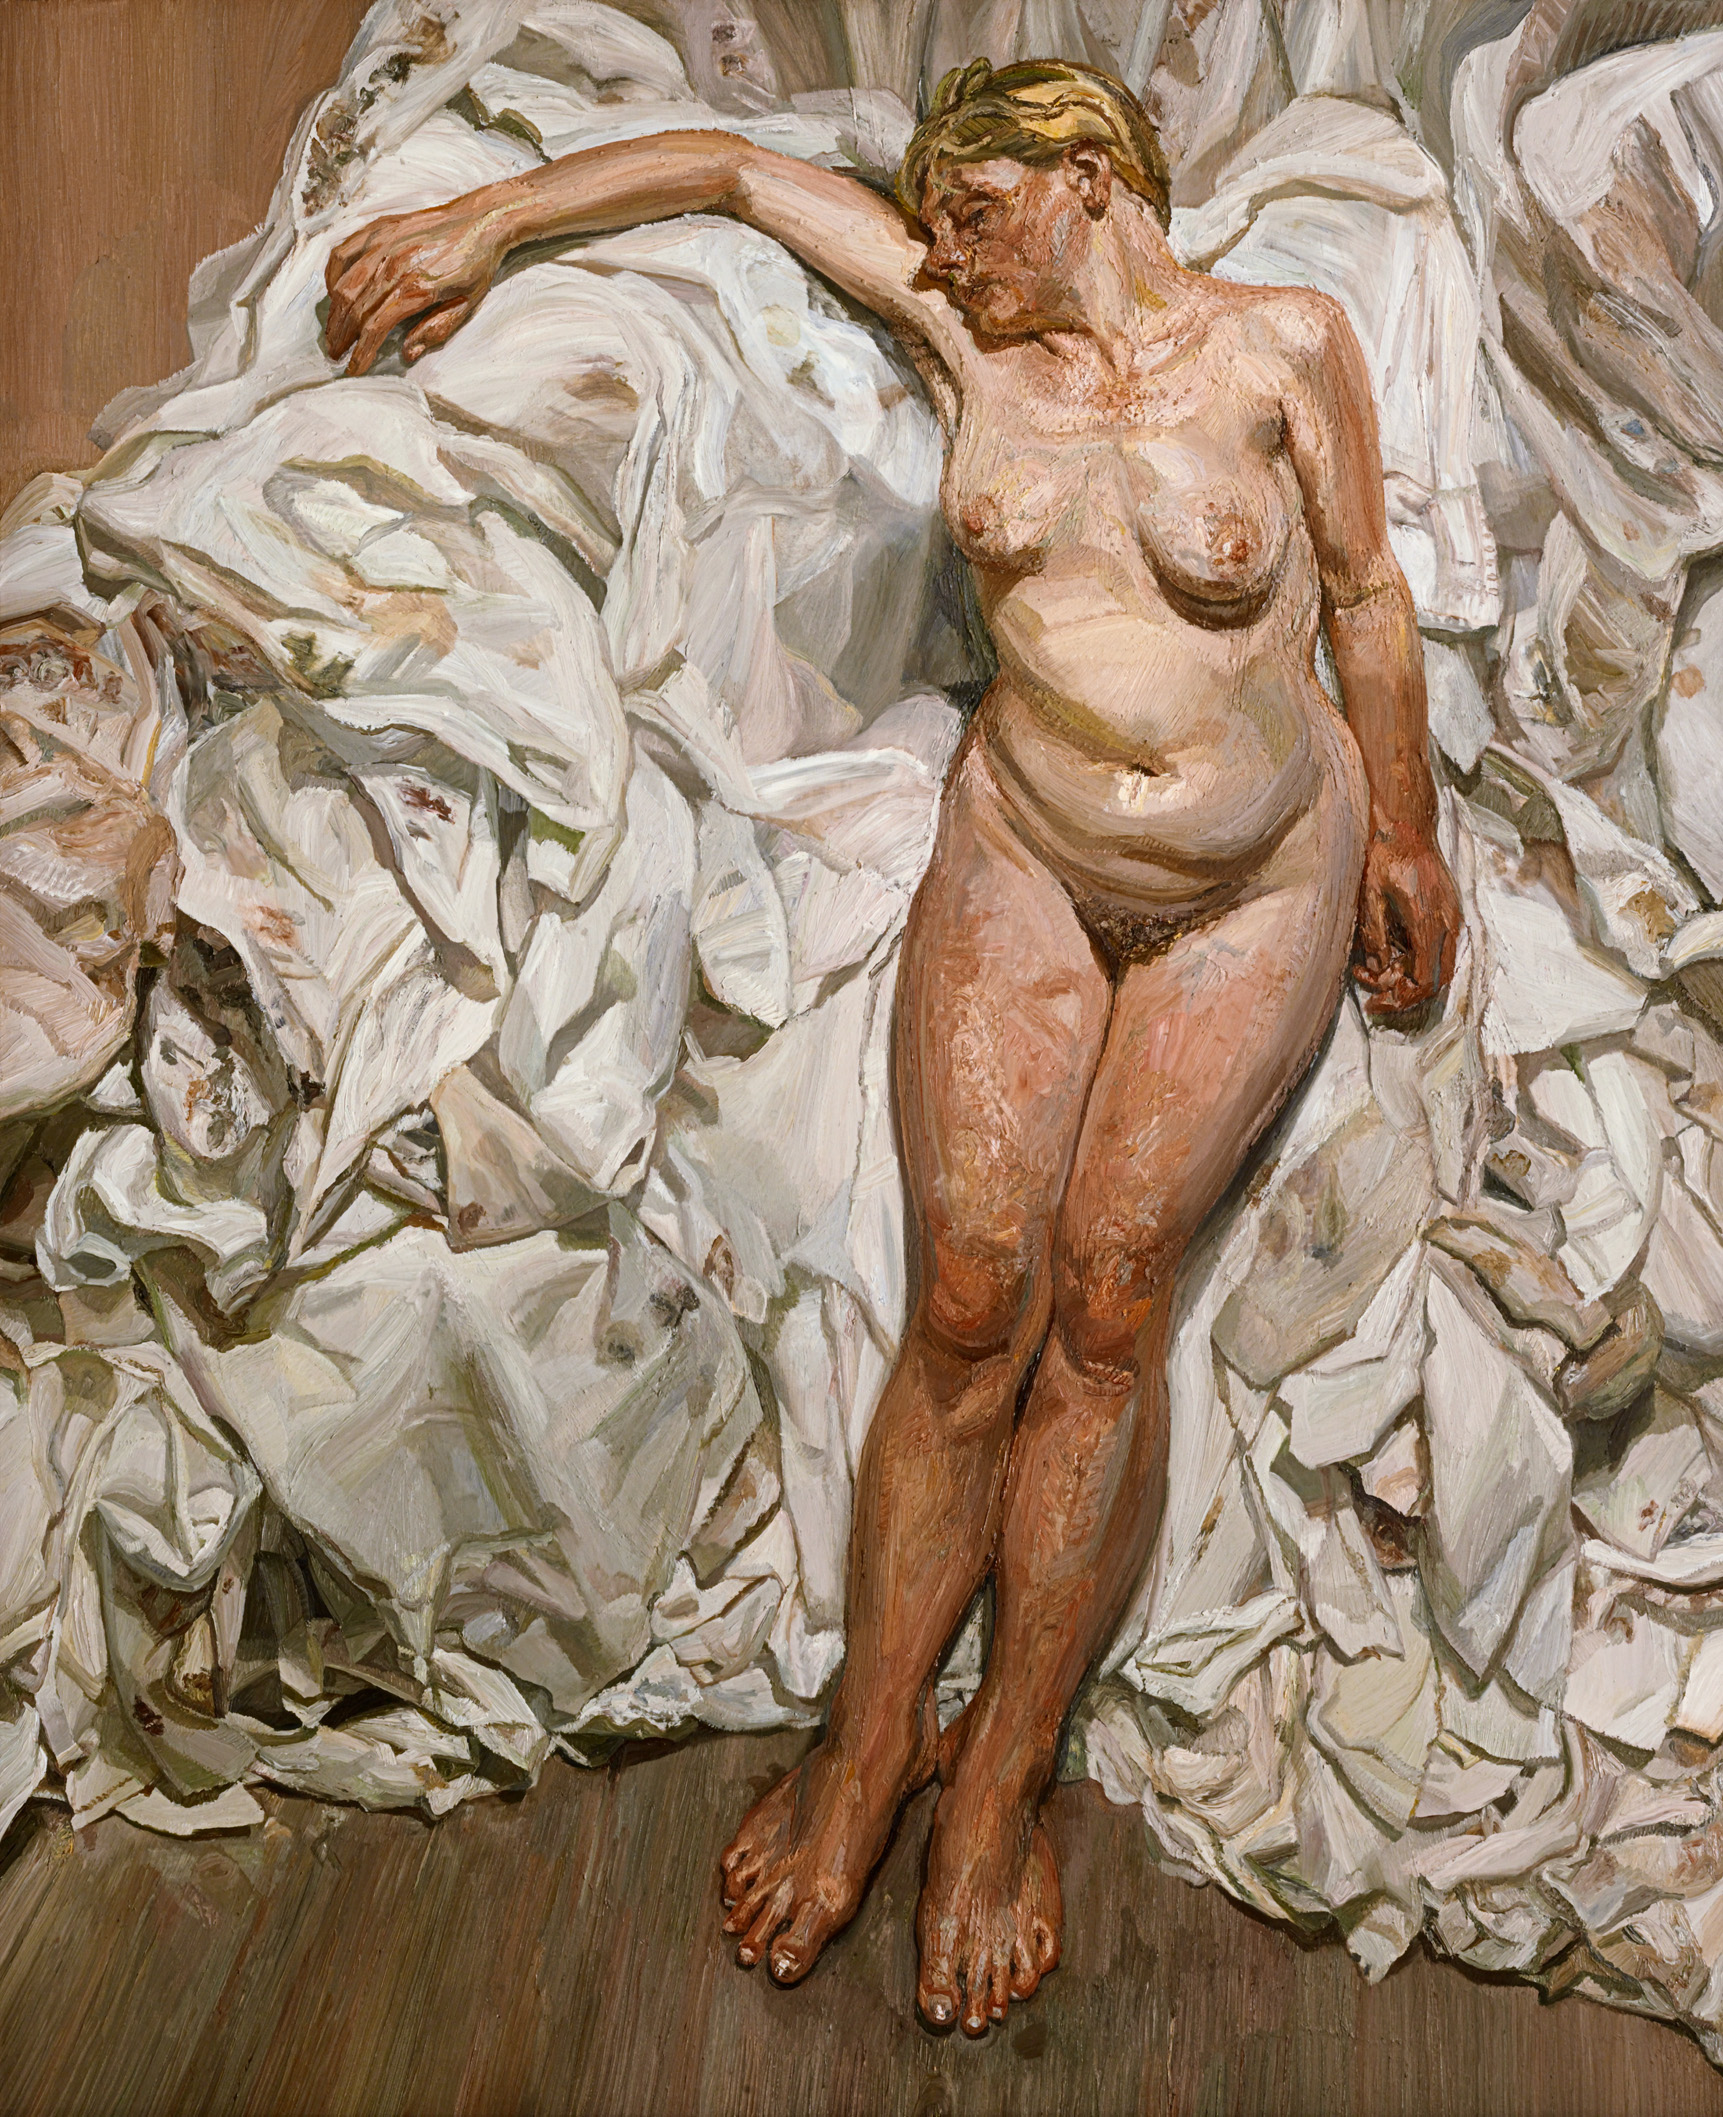 Lucian freud naked portrait certainly. consider